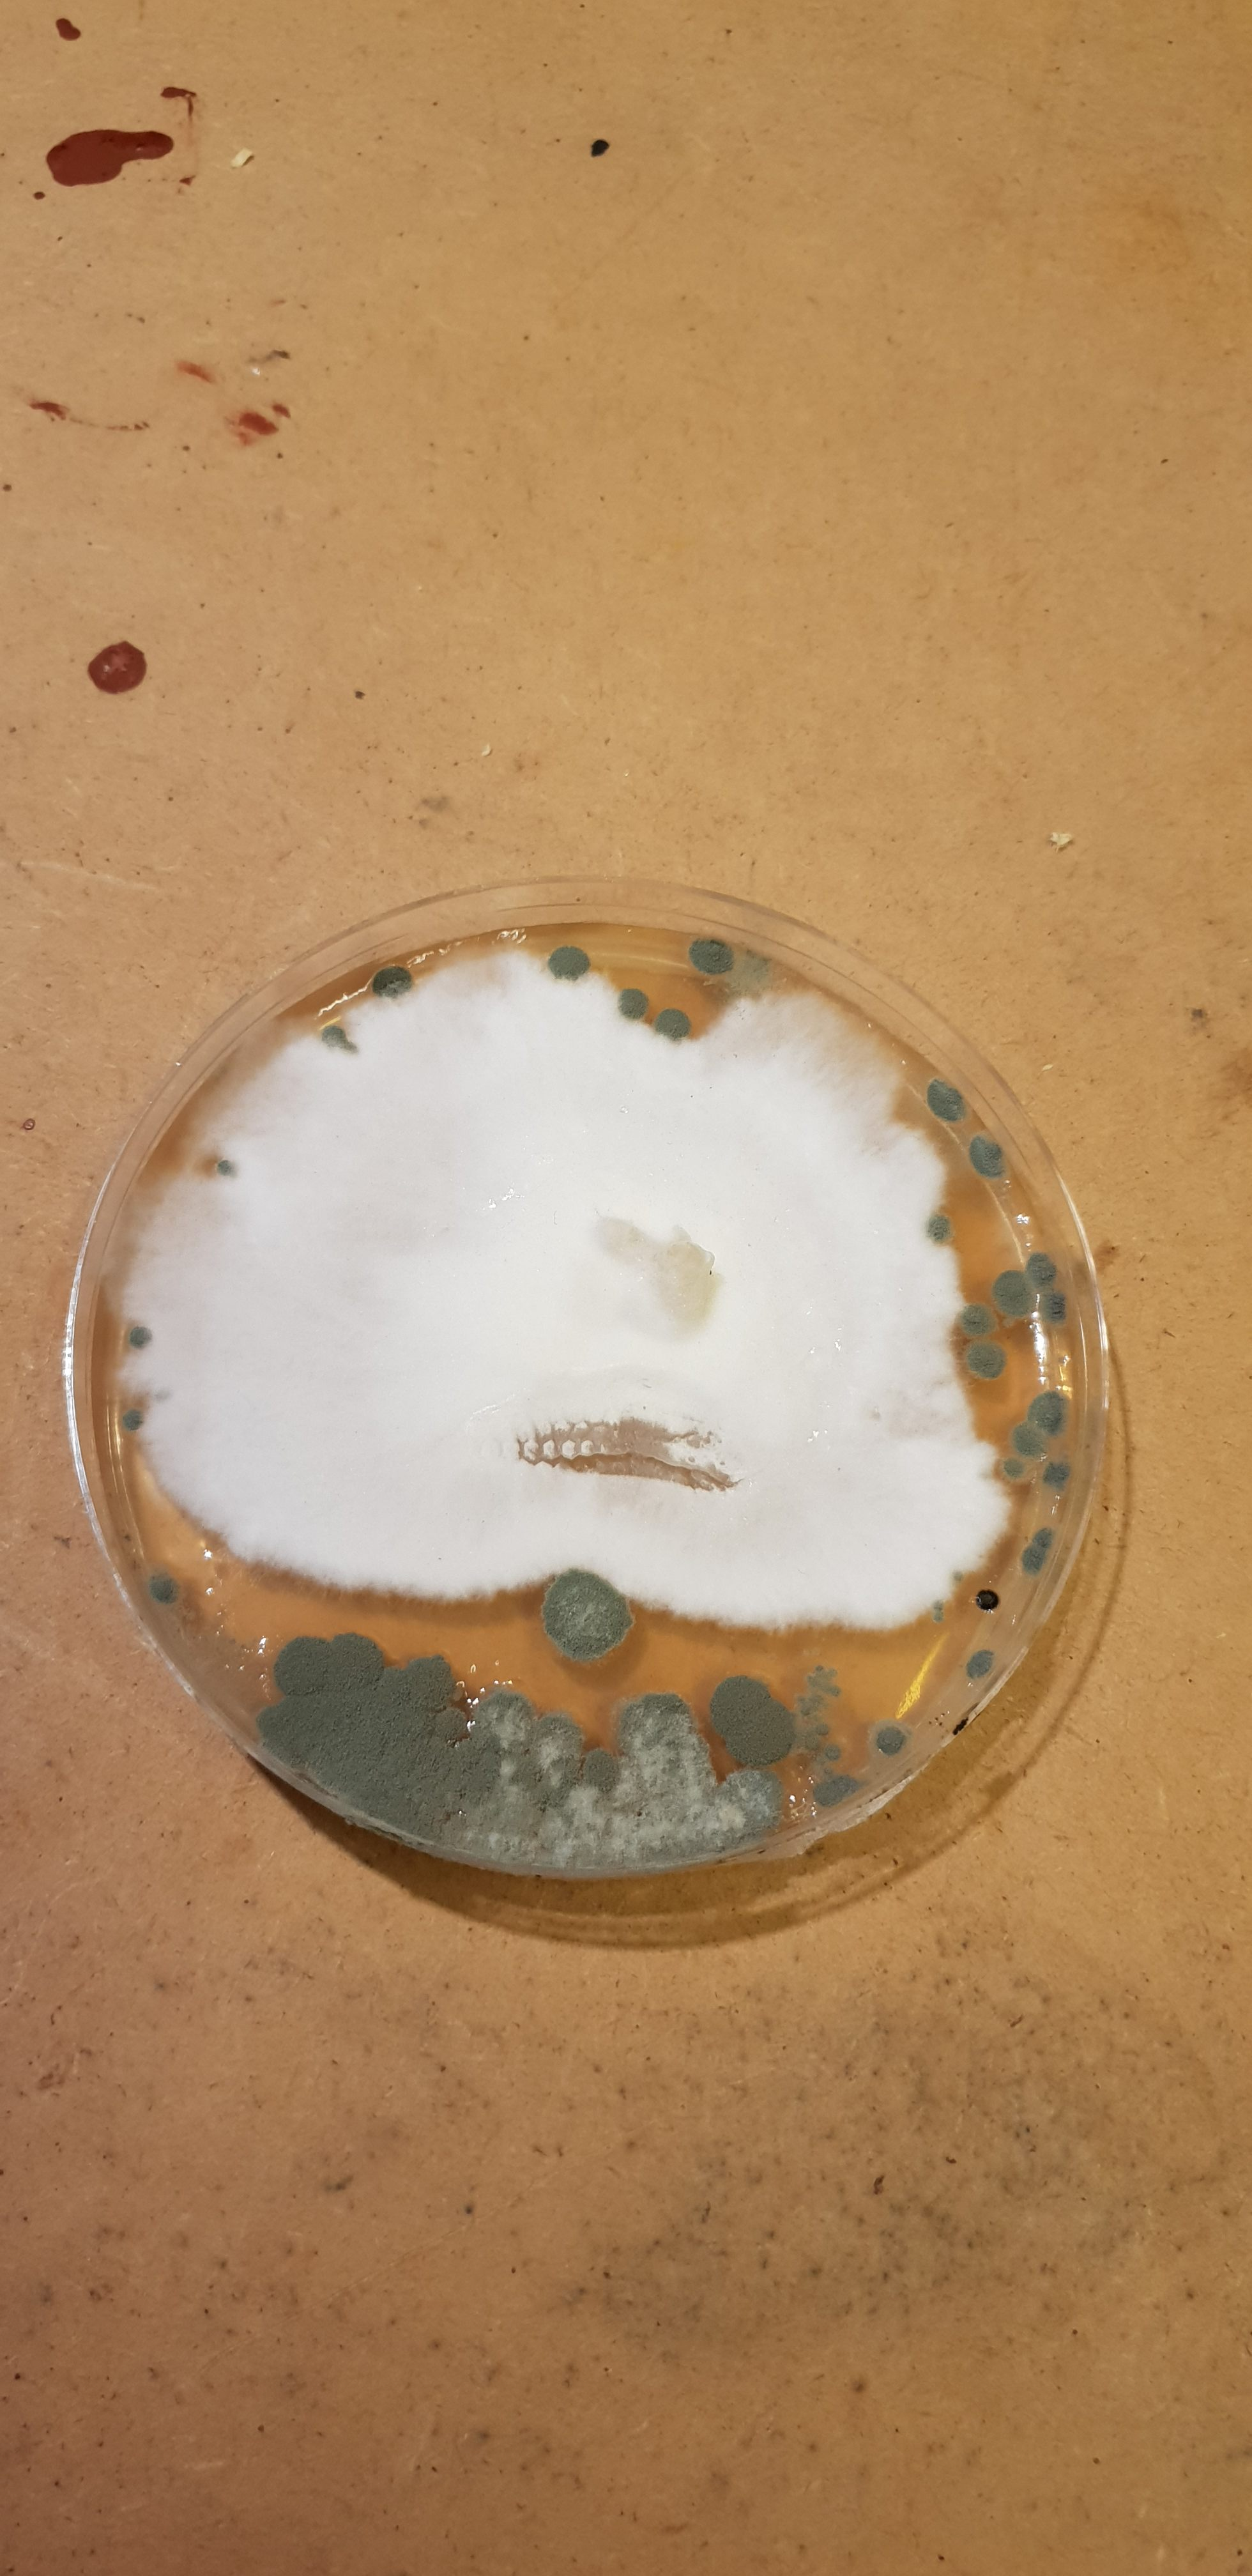 Trichoderma Infected Petri Dish Of King Oyster Mushrooms | Archer's Mushrooms